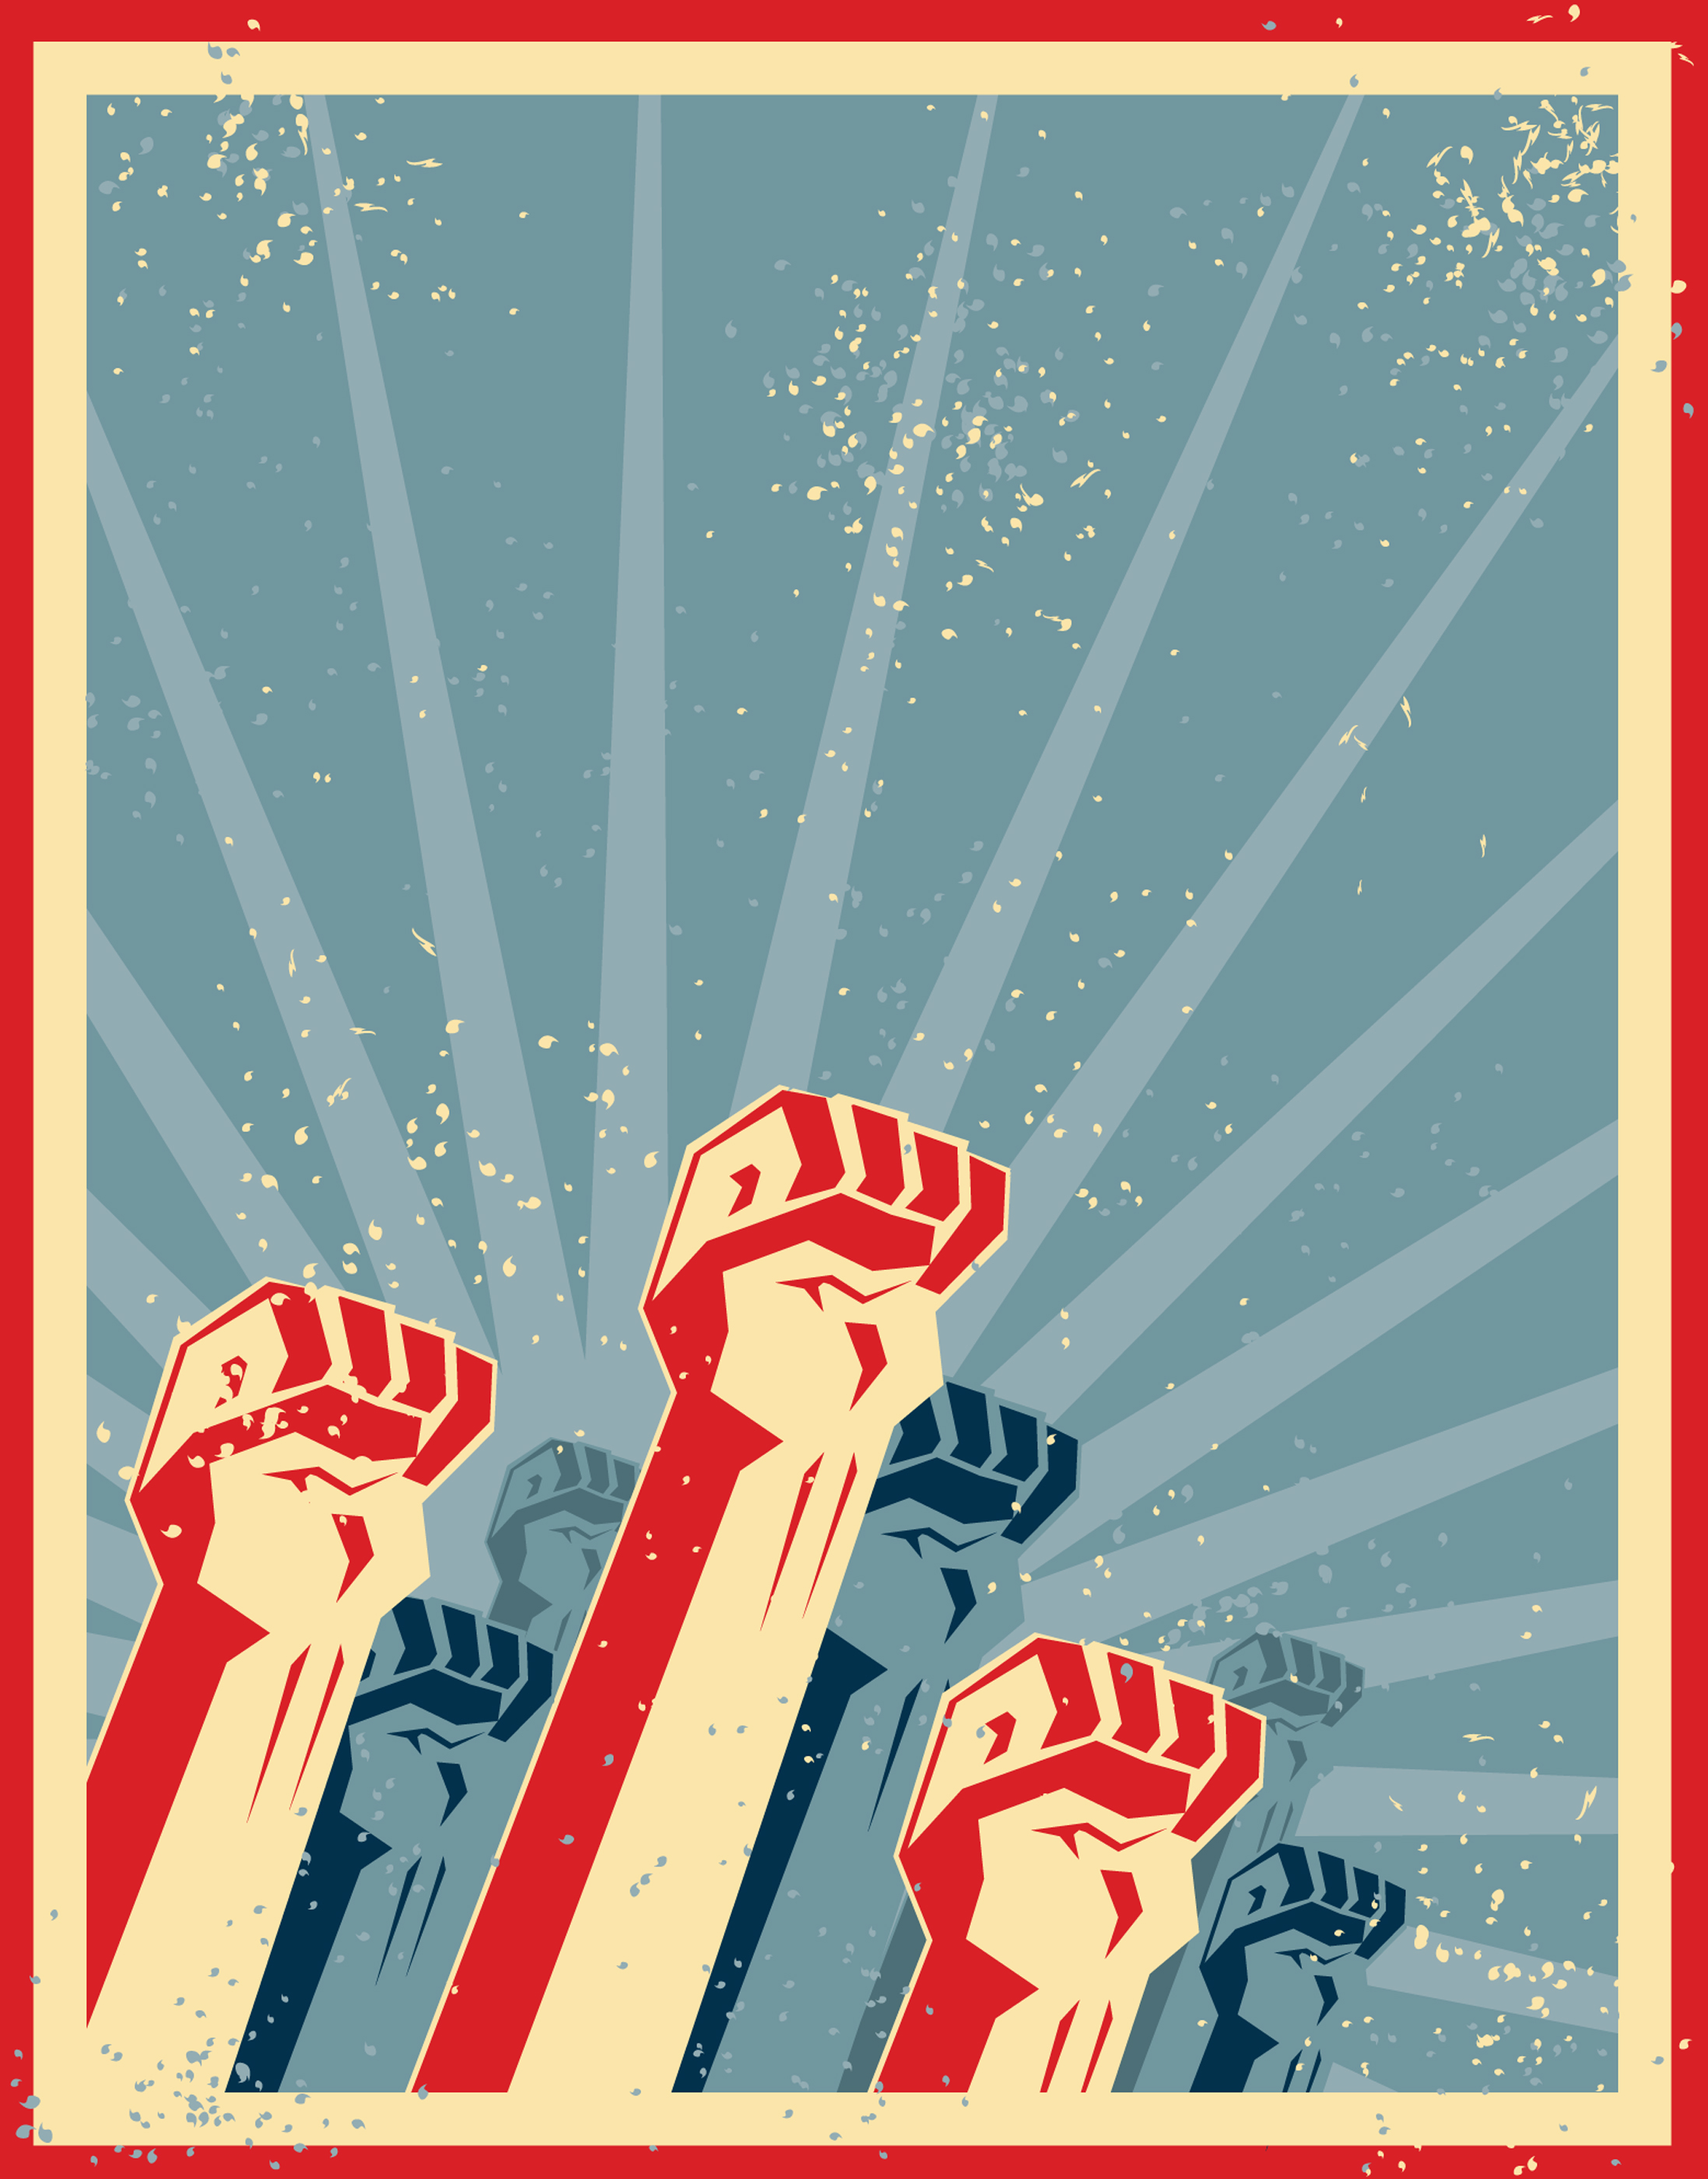 Very workers unite fist